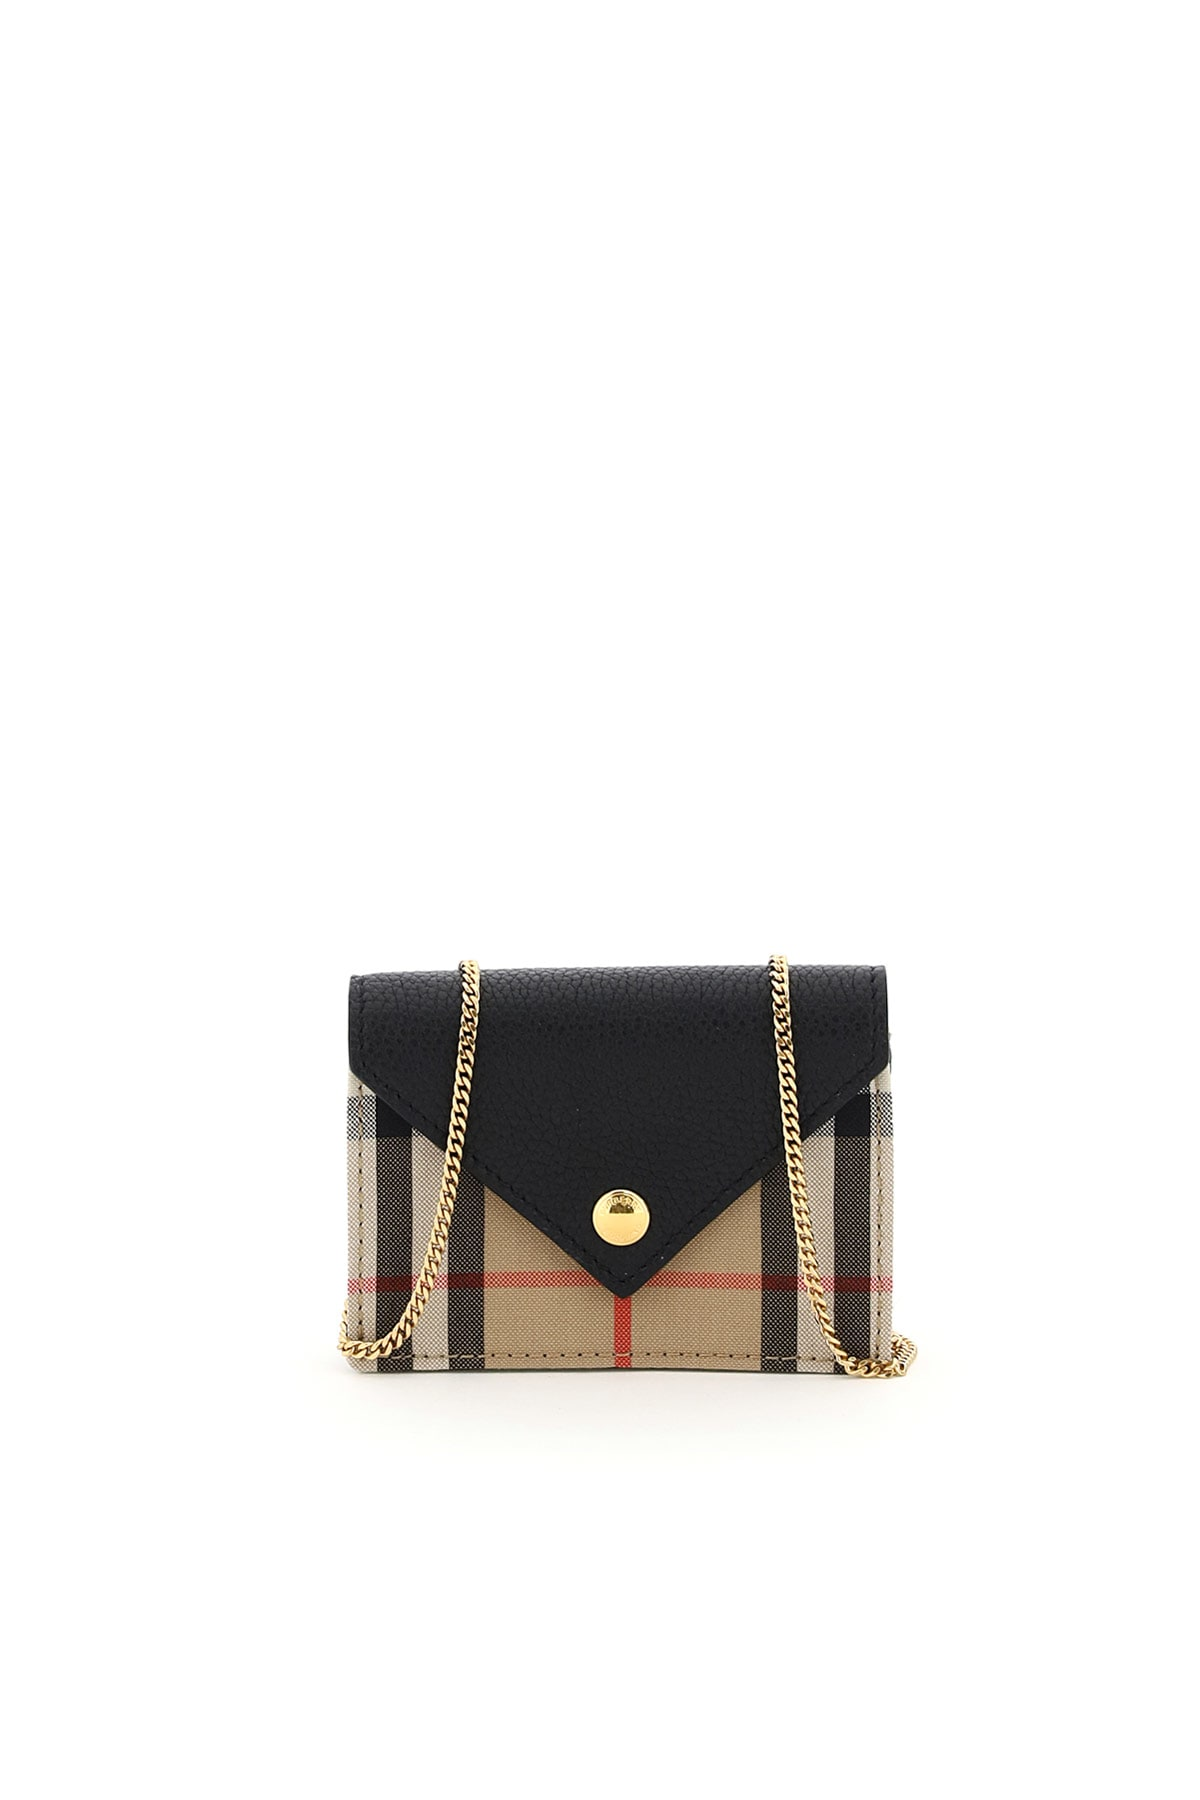 Burberry Cardholders JADE CARD HOLDER MICRO BAG